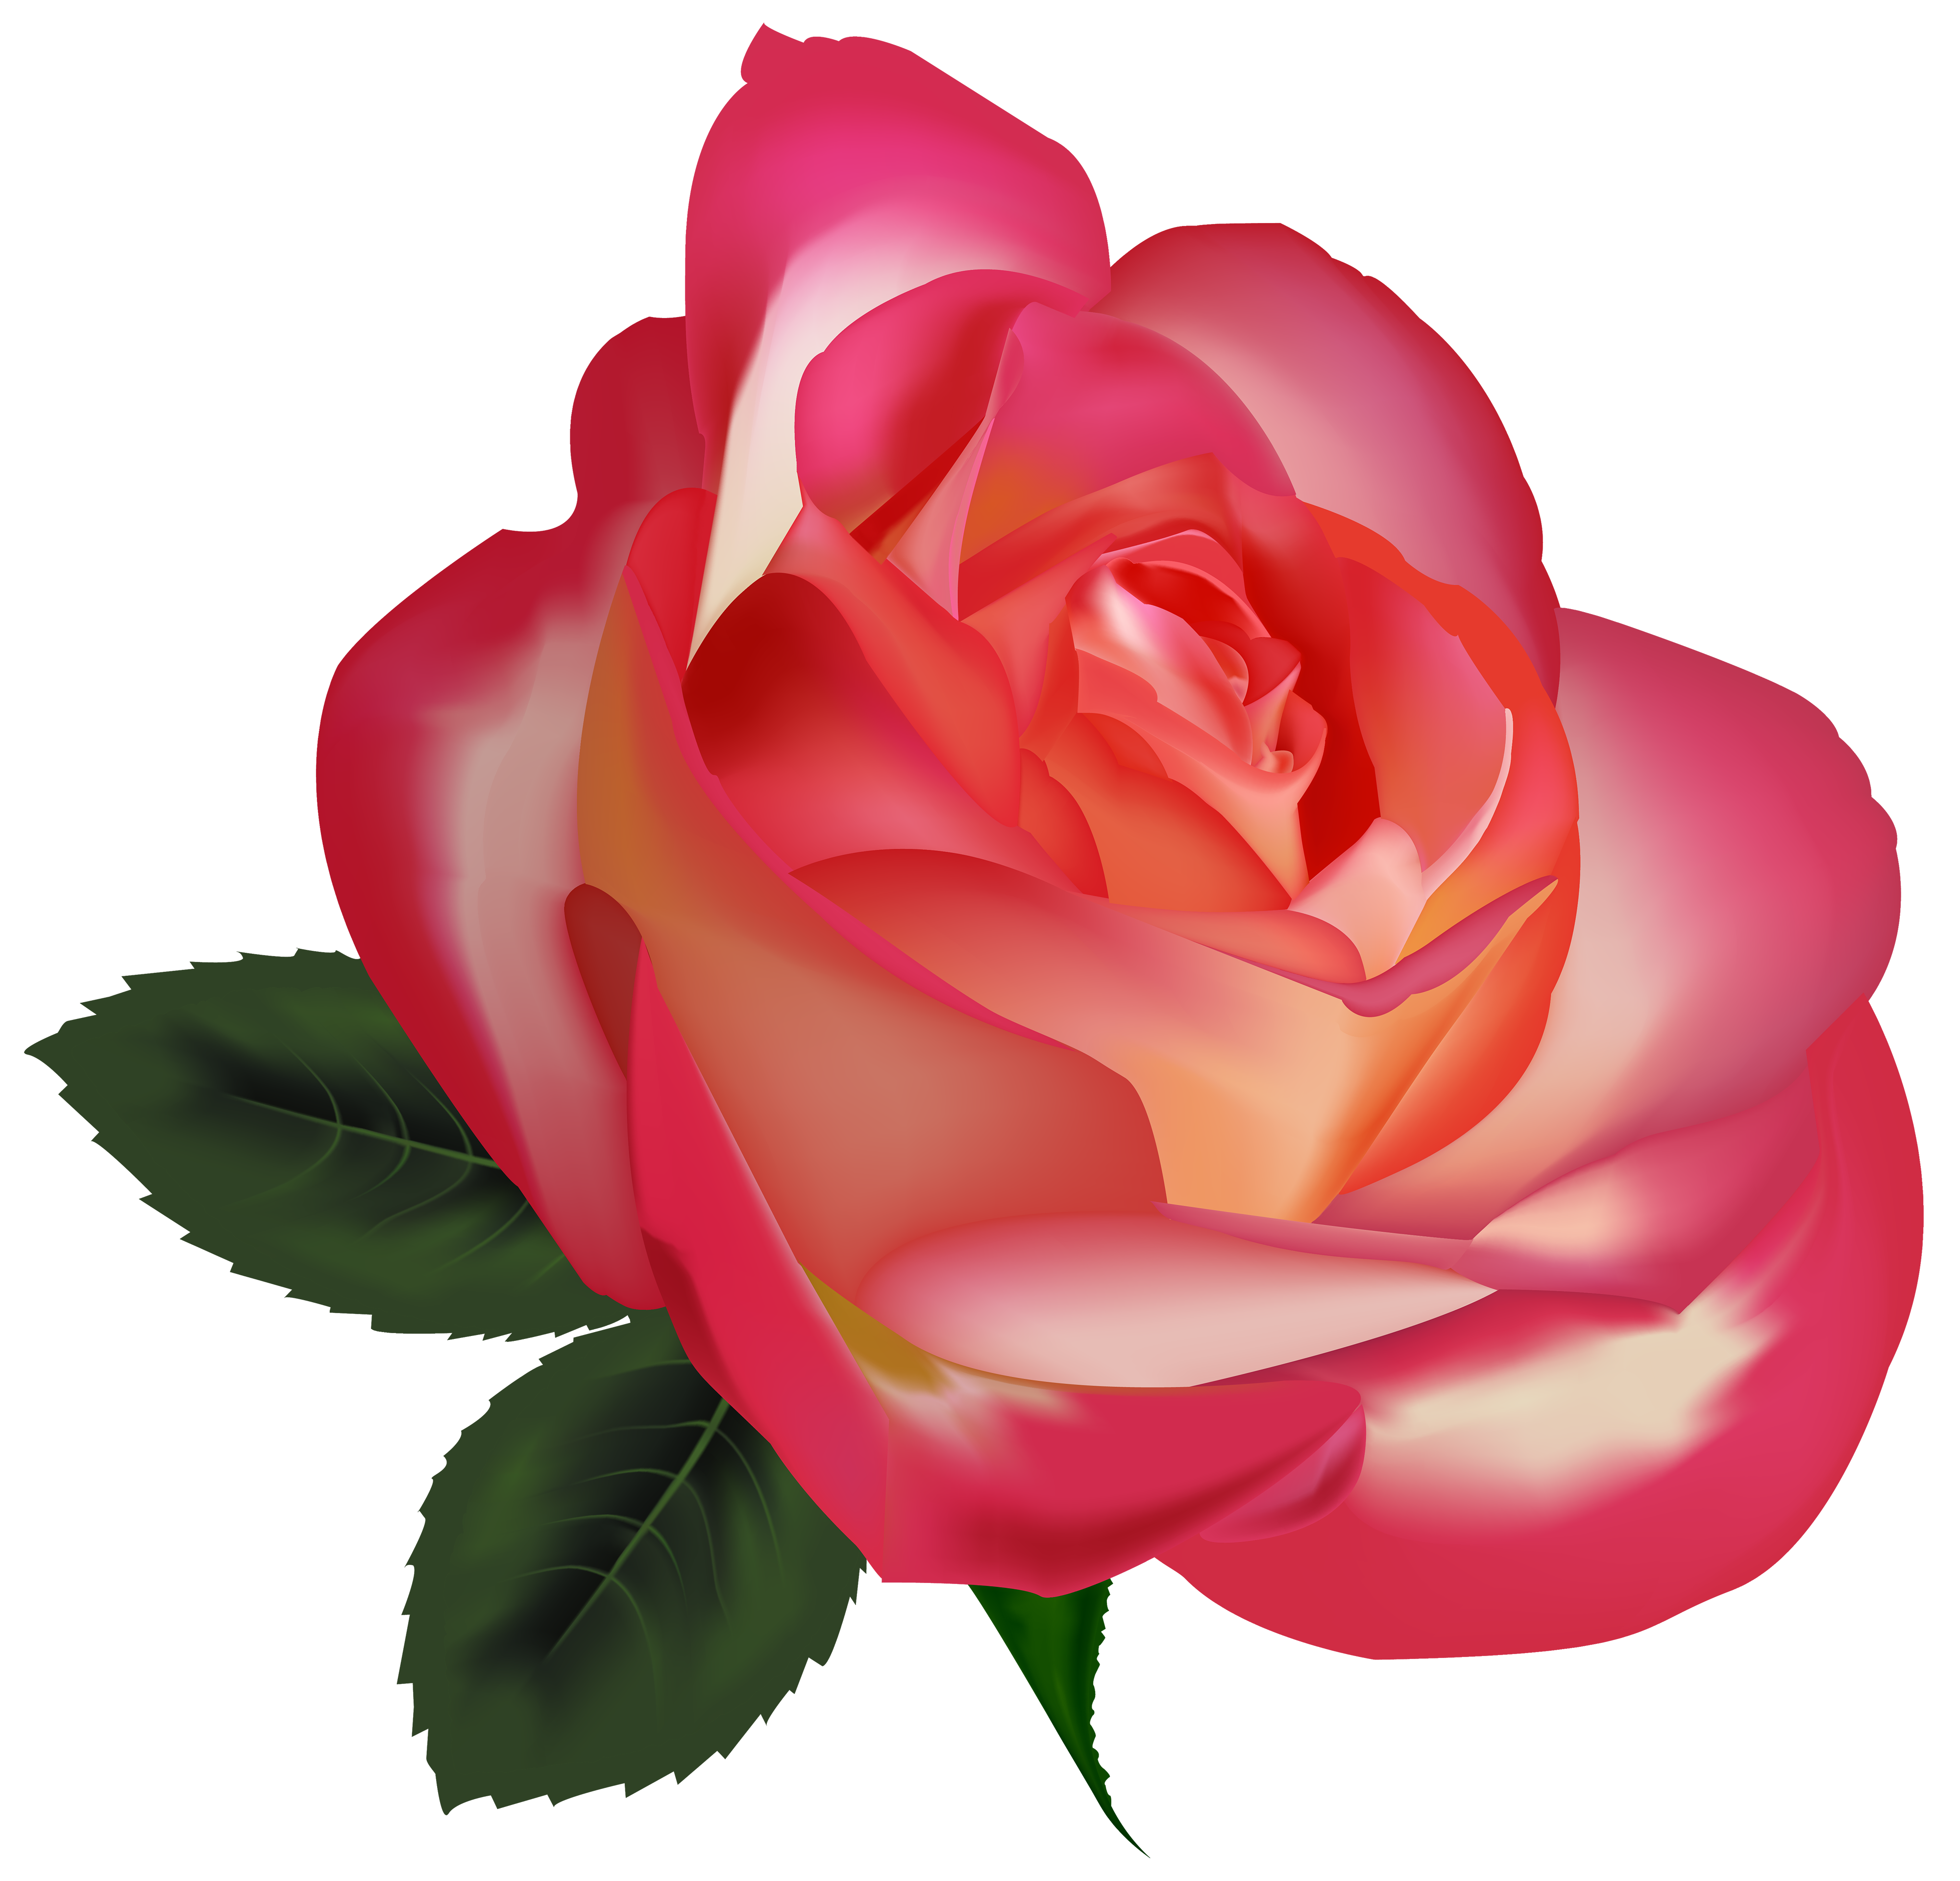 jpg transparent download Beautiful clipart. Rose png image best